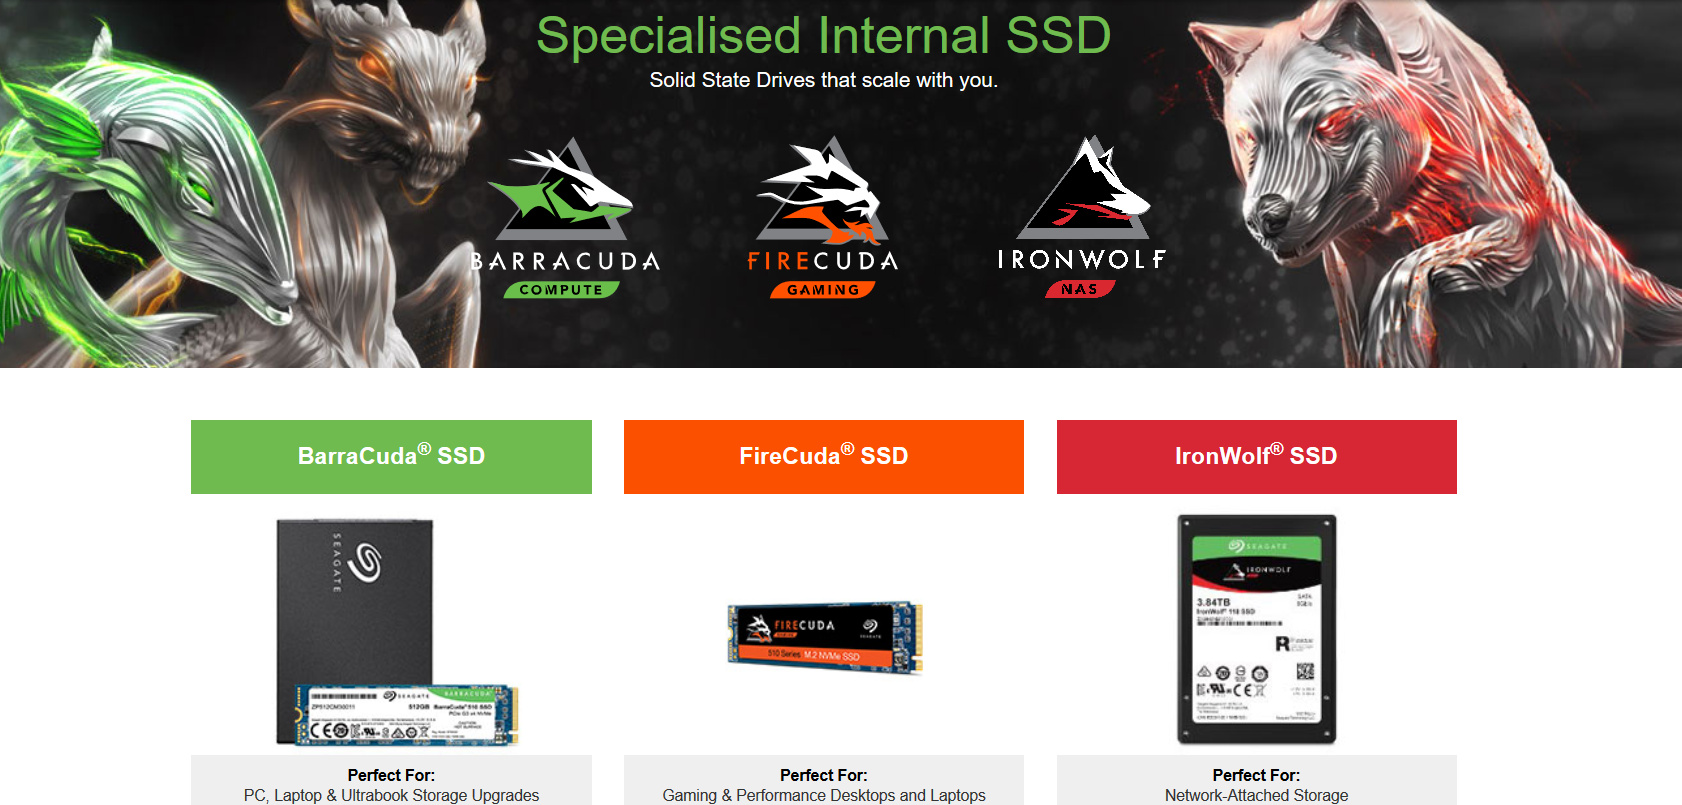 Seagate BarraCuda 250GB SSD Review: embark on a new battle